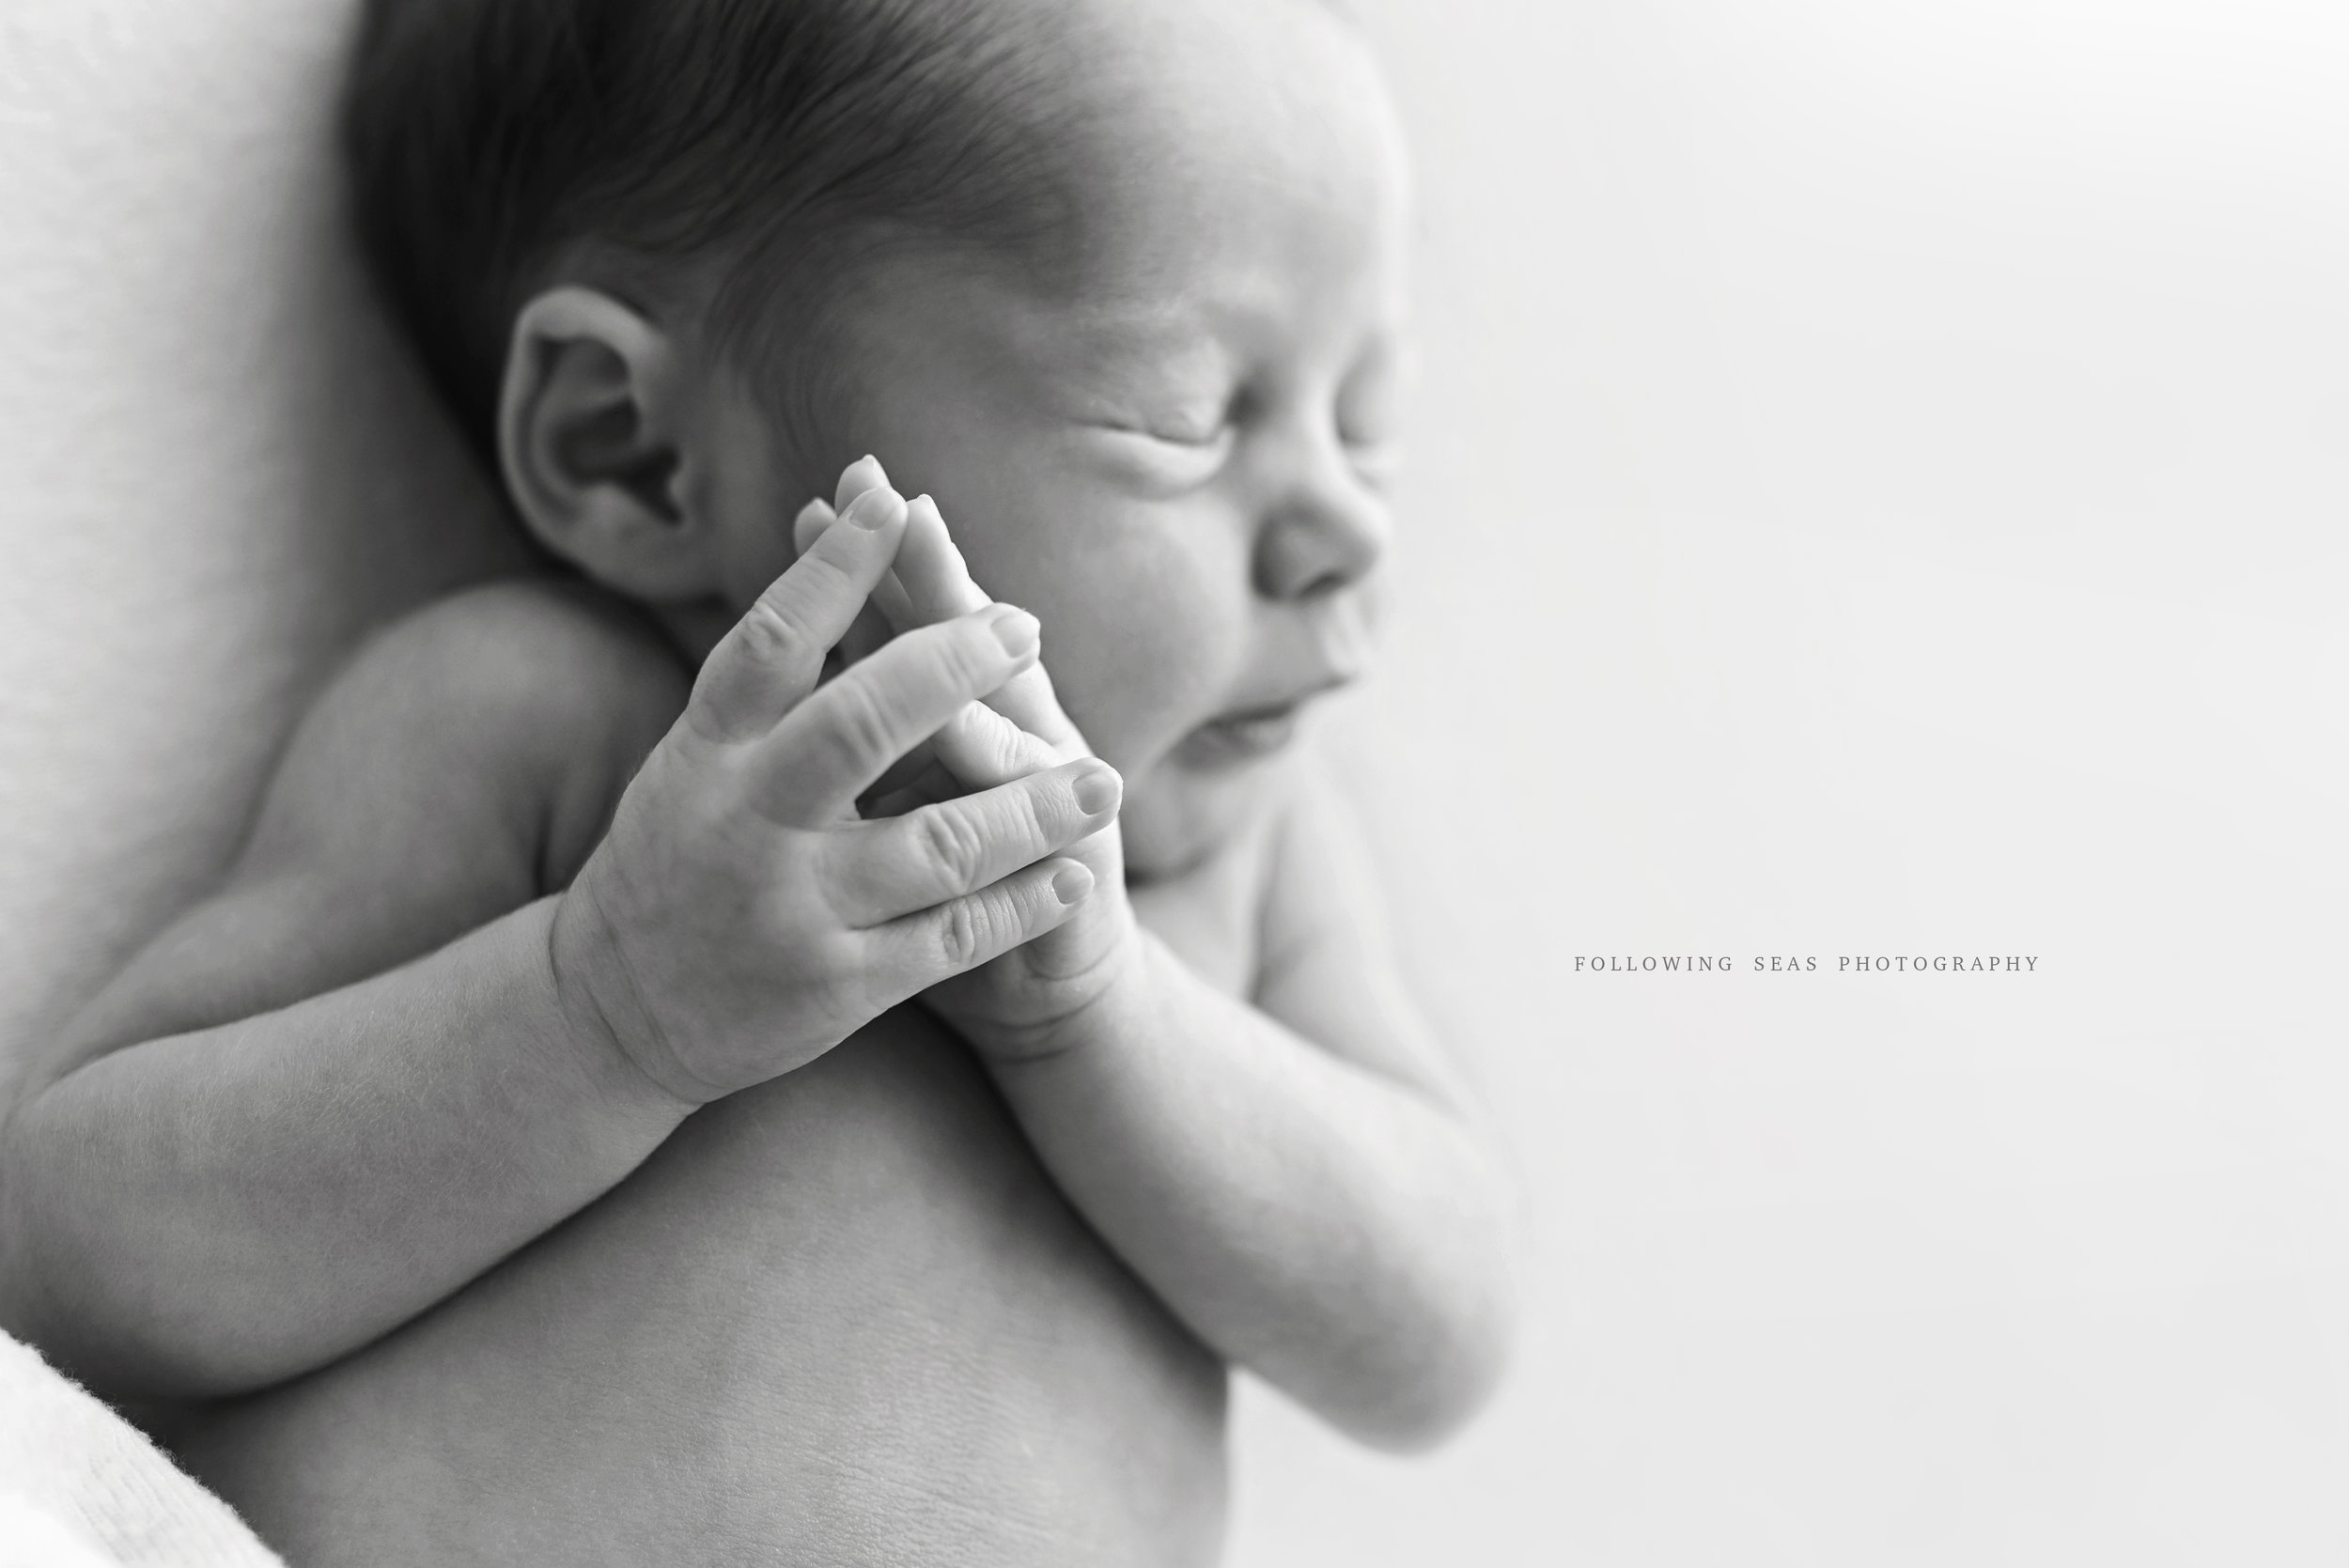 Charleston-Newborn-Photographer-Following-Seas-Photography-FSP_6998BW.jpg